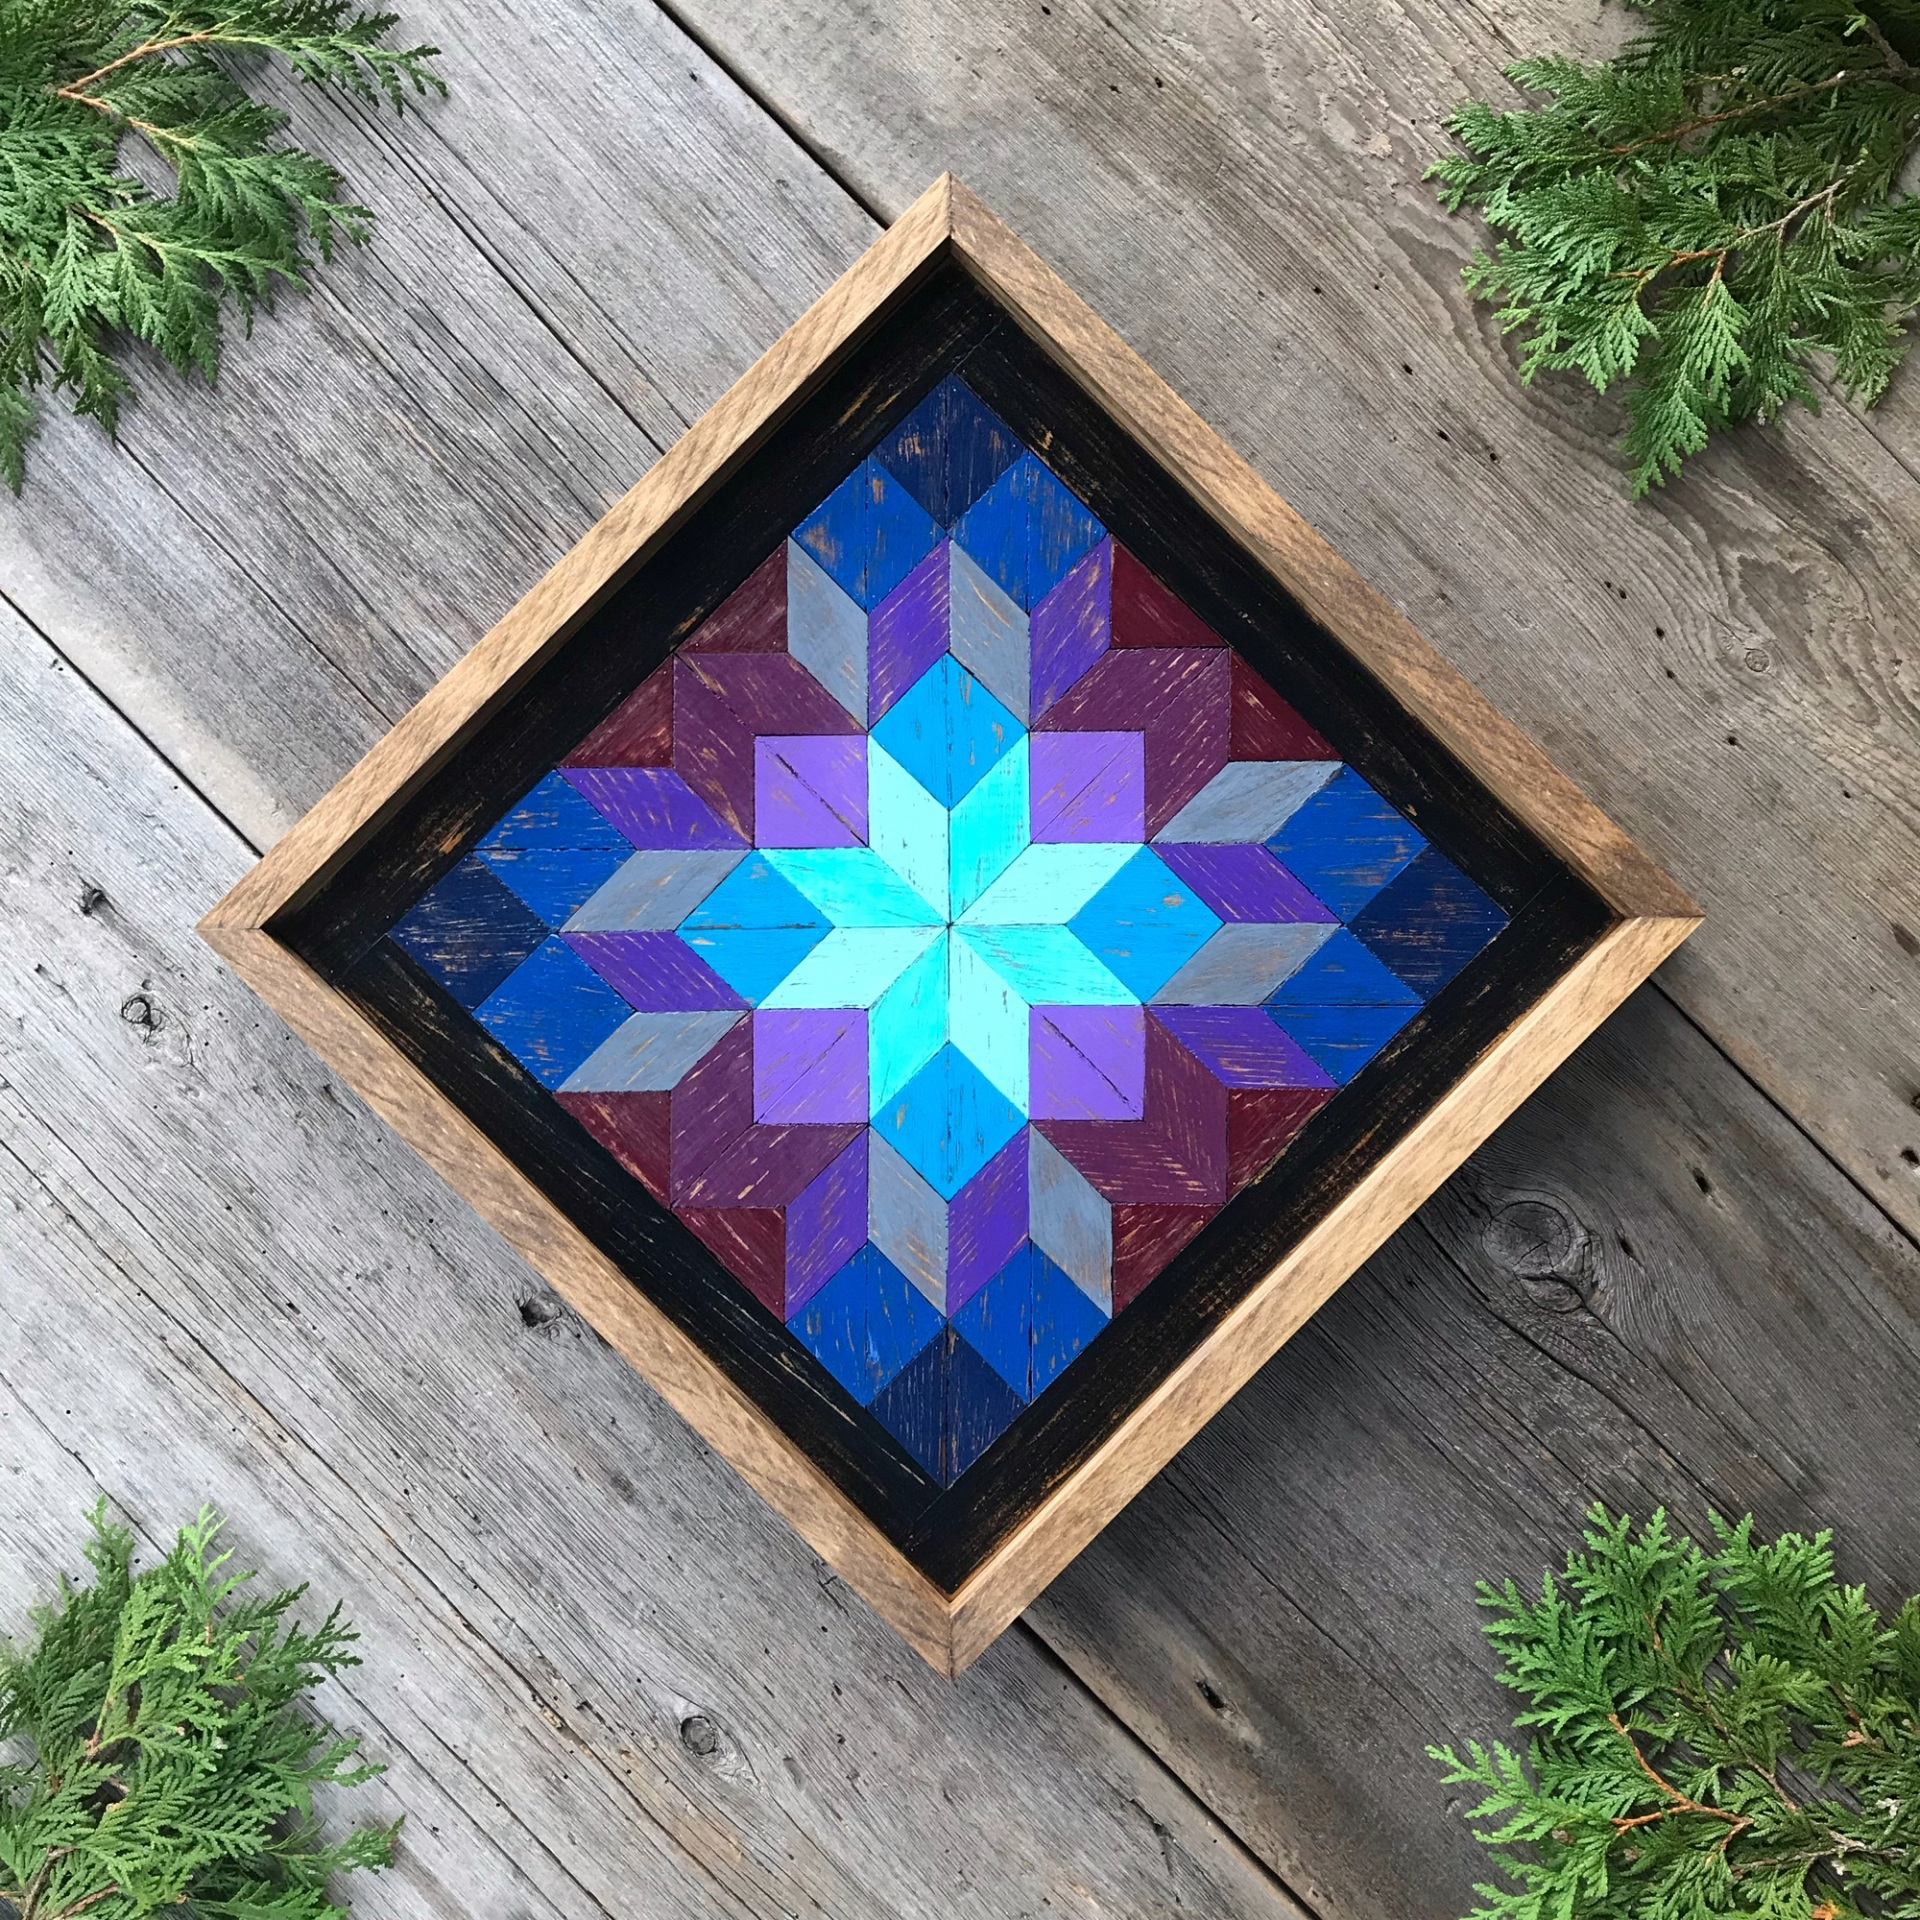 Barn Quilt, Star Quilt Block, Wood Quilt Square, Wooden Wall Hanging, Jewel Tones, Framed Wall Decor, Rustic Country Decor